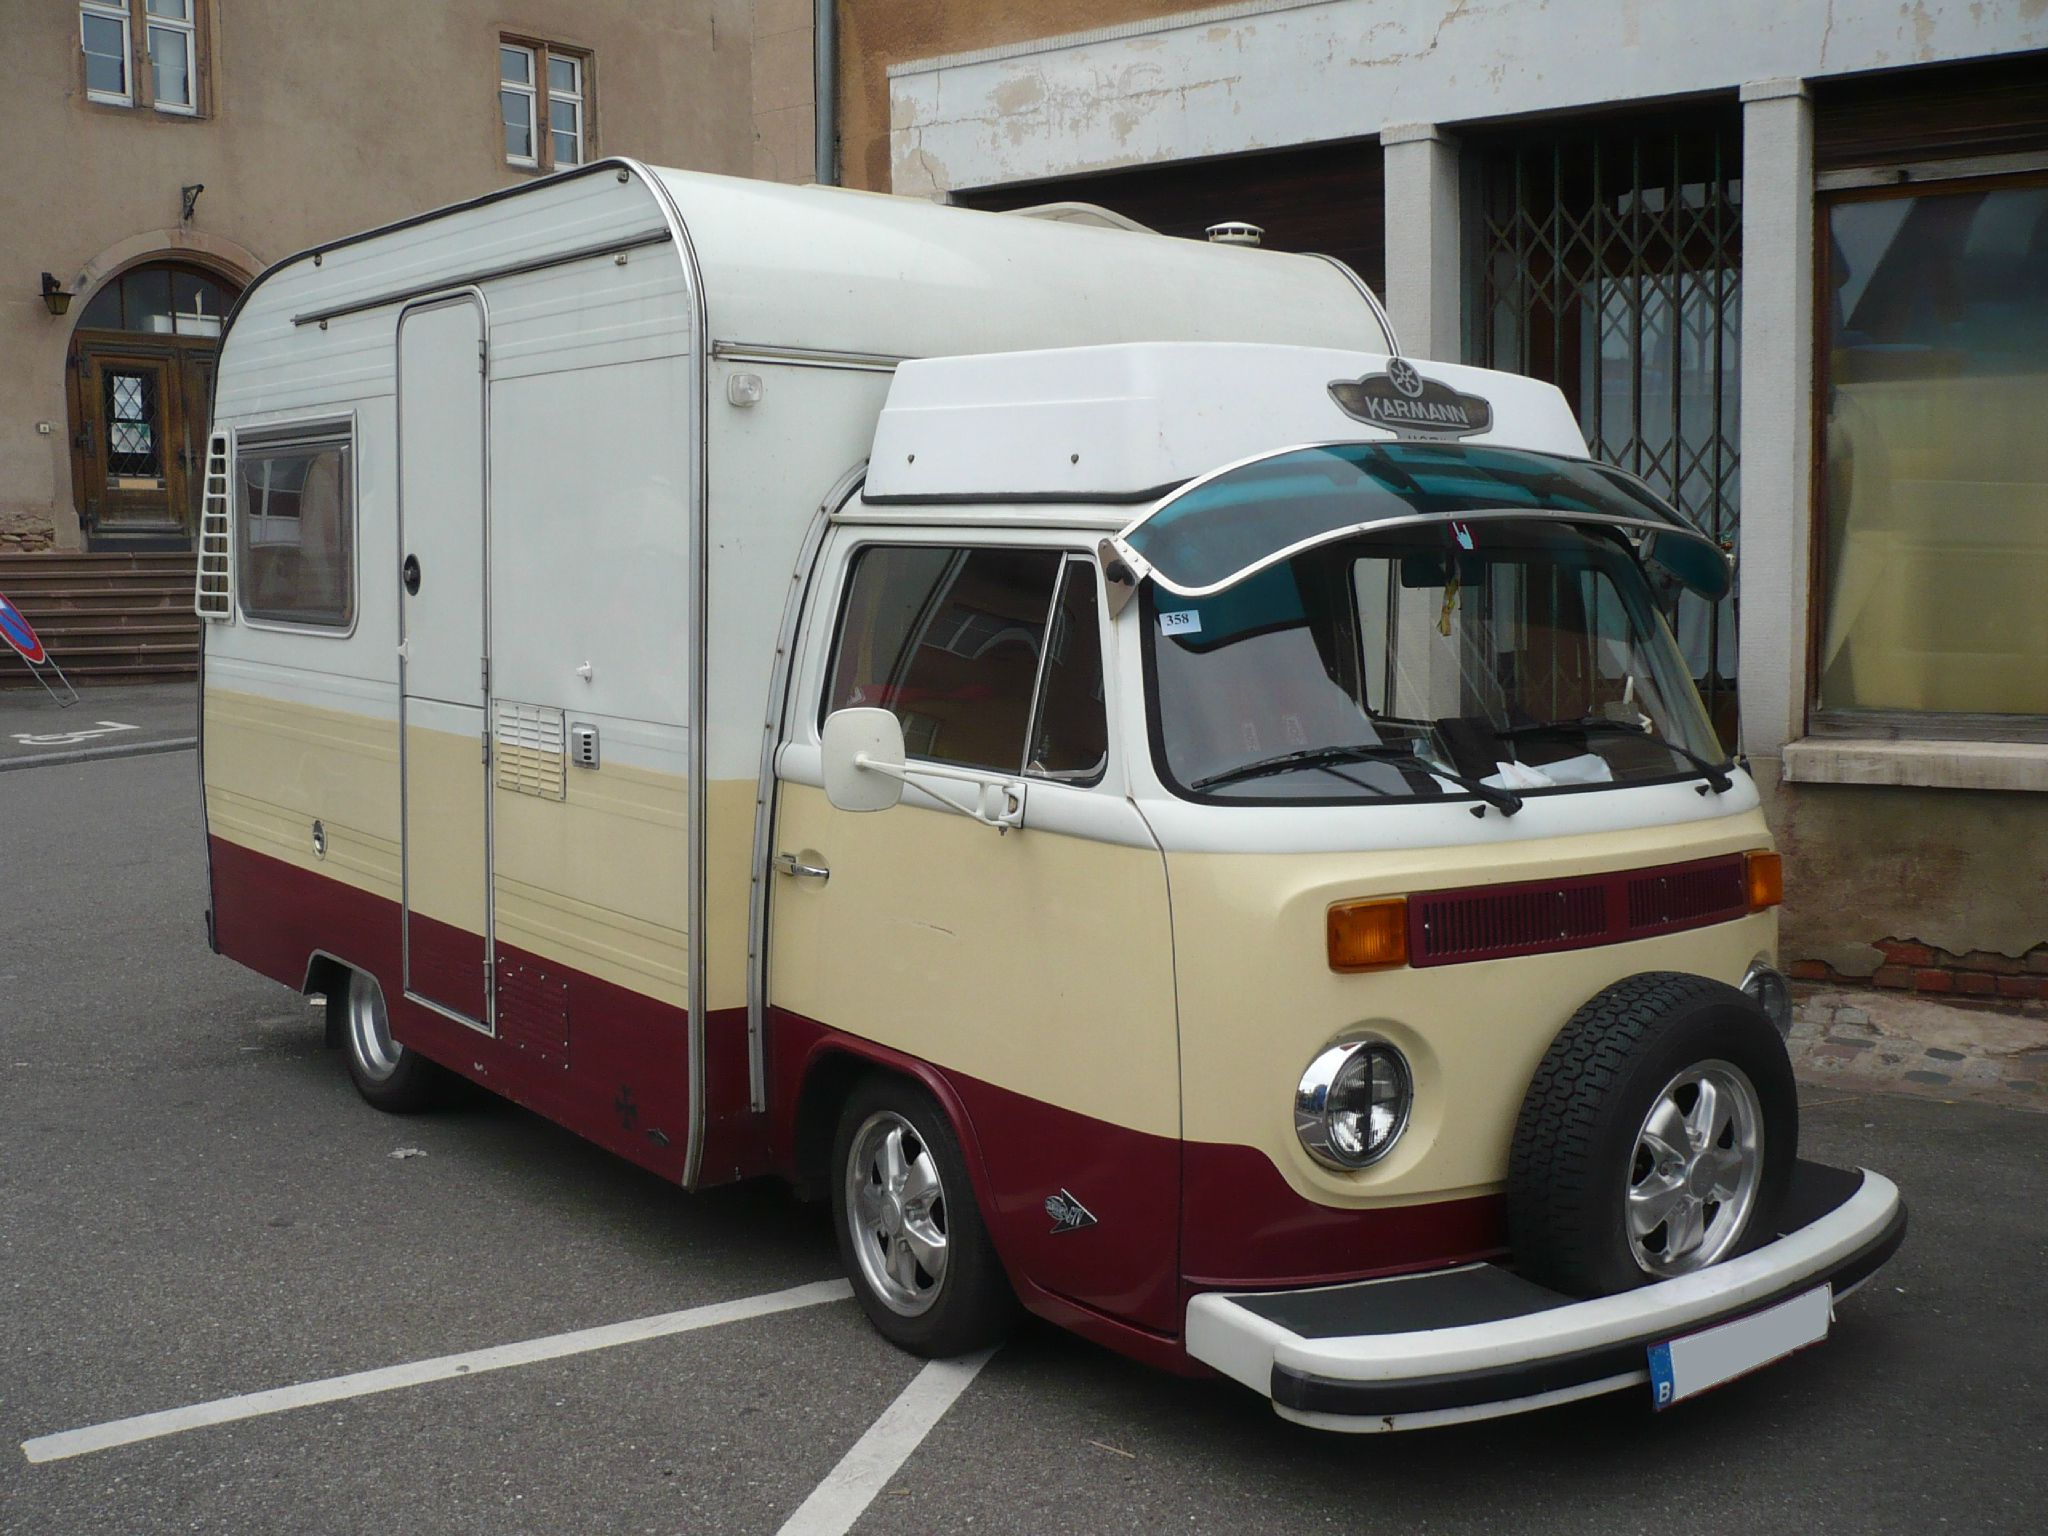 volkswagen combi type 2 karmann mobil camping car molsheim 1 photo de 068 7e molsheim cox. Black Bedroom Furniture Sets. Home Design Ideas